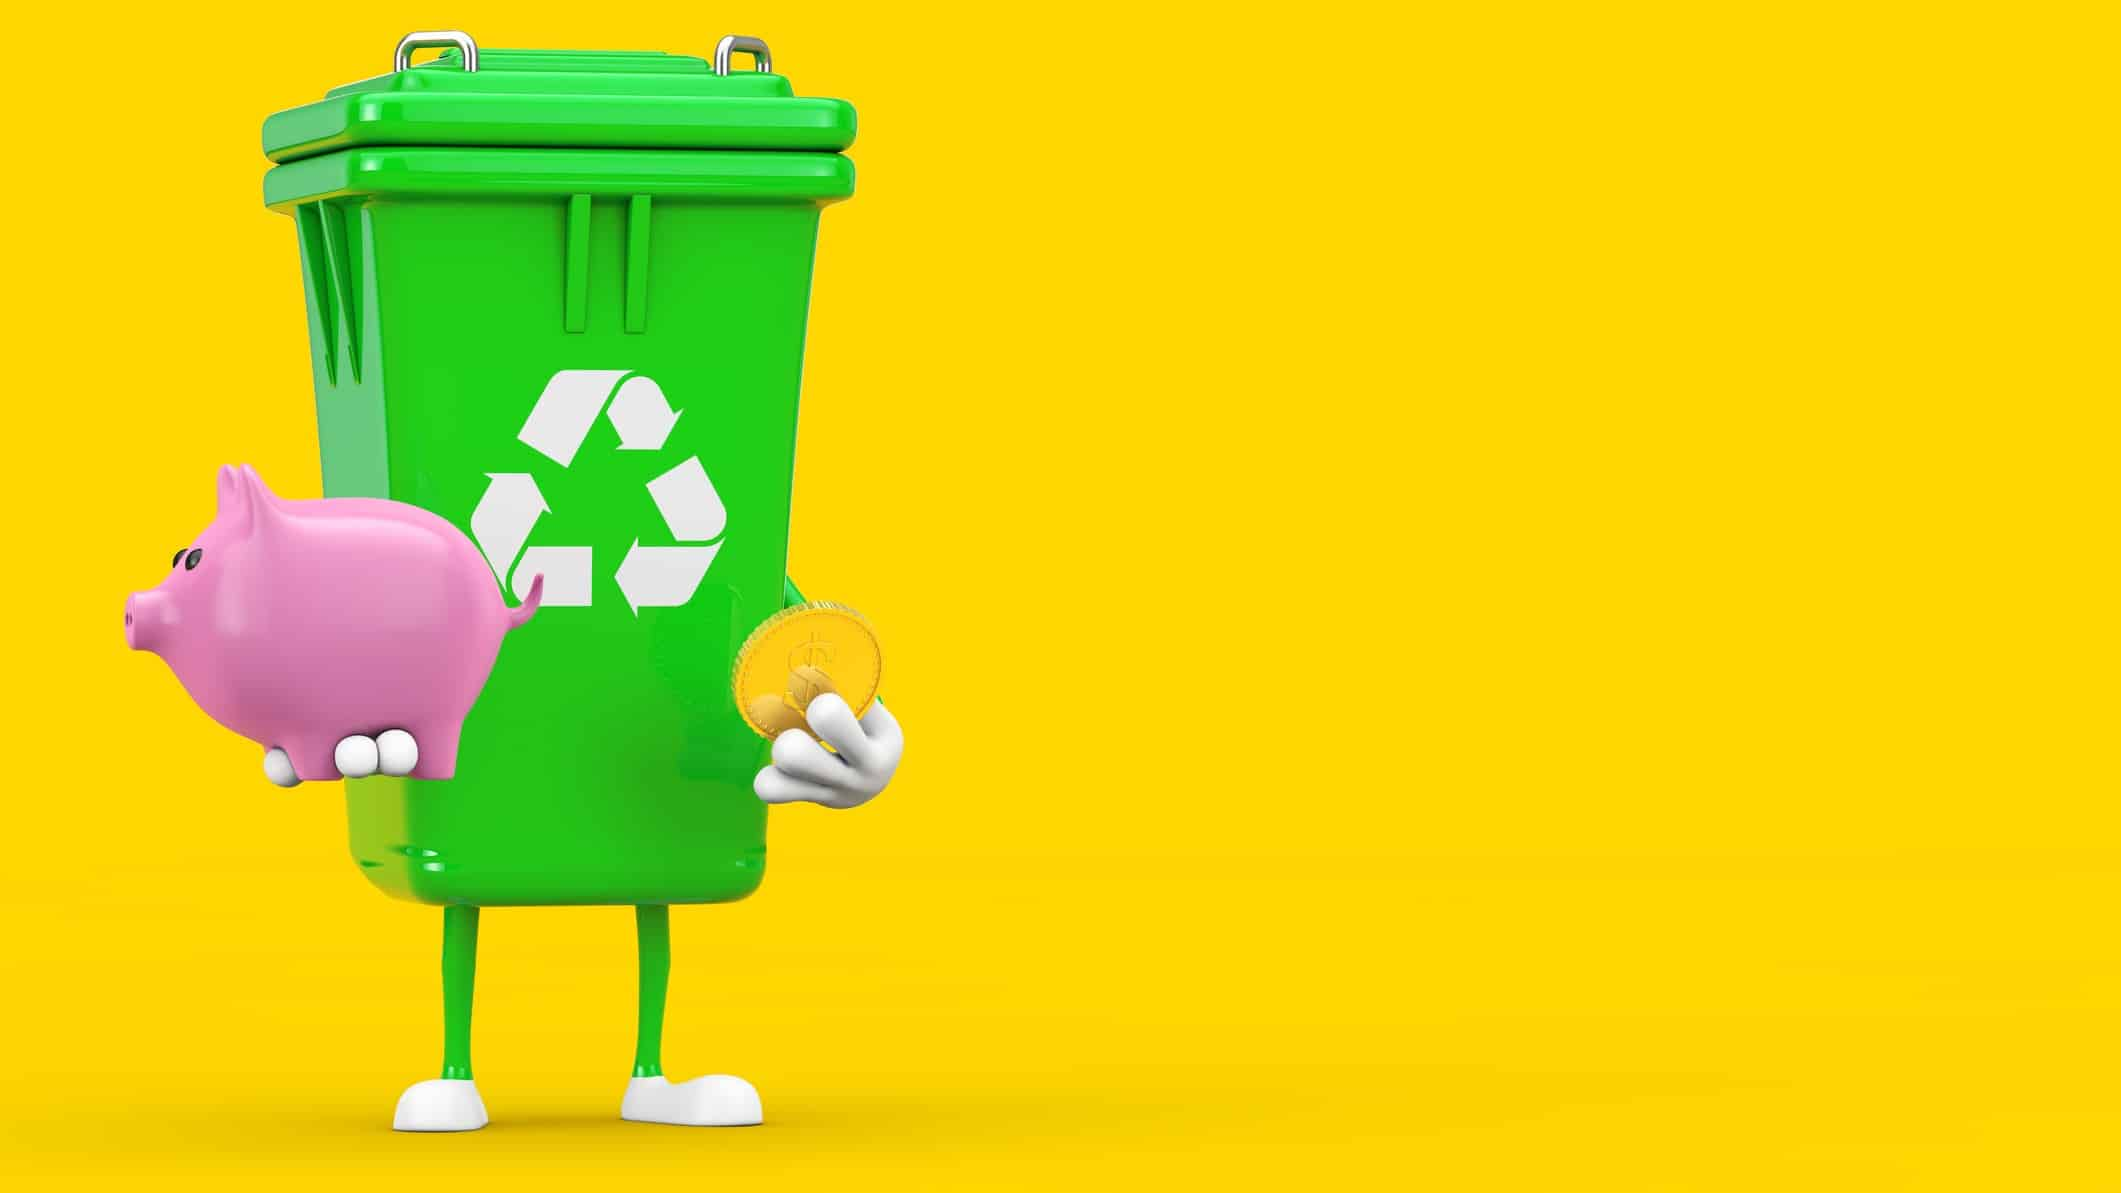 recycling asx share price represented by bin holding piggy bank and coin